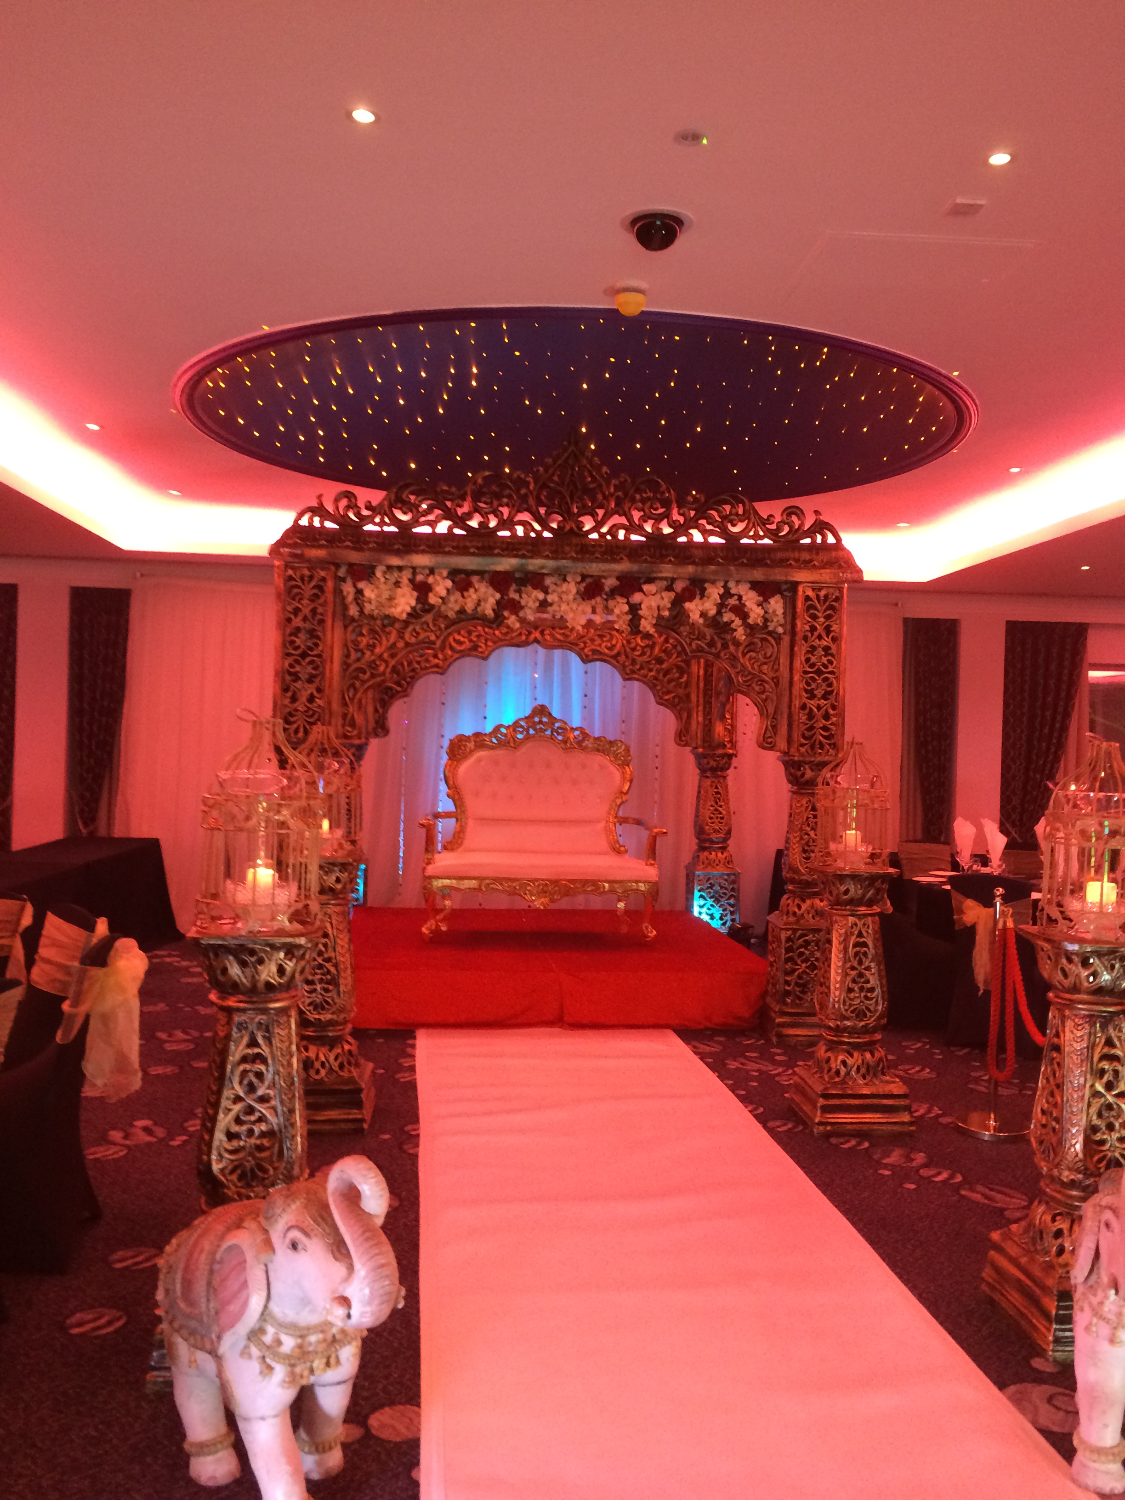 the royal mandap (lighting)